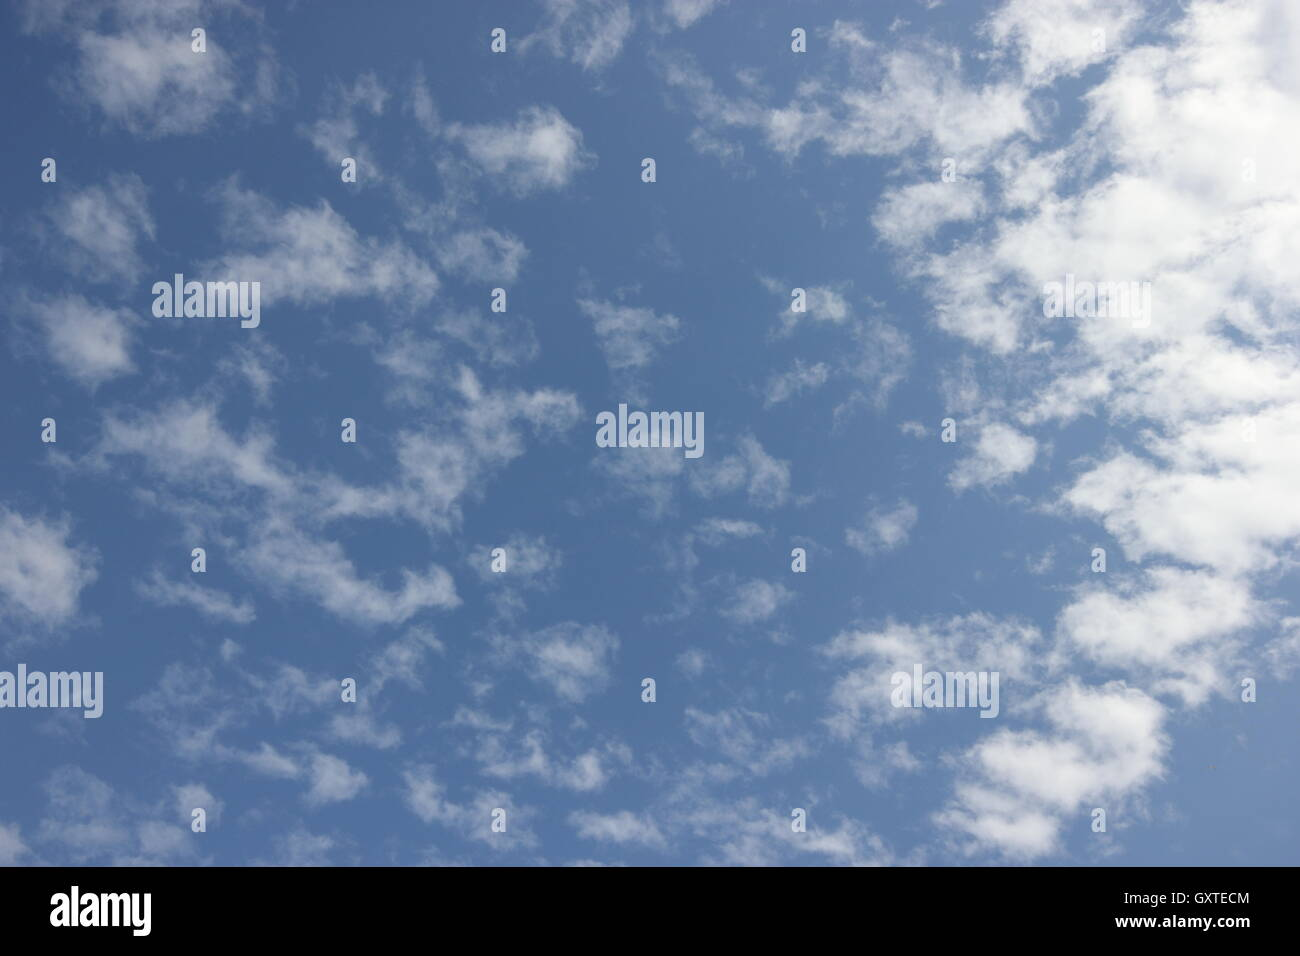 a beautifully blue cloudy sky - Stock Image